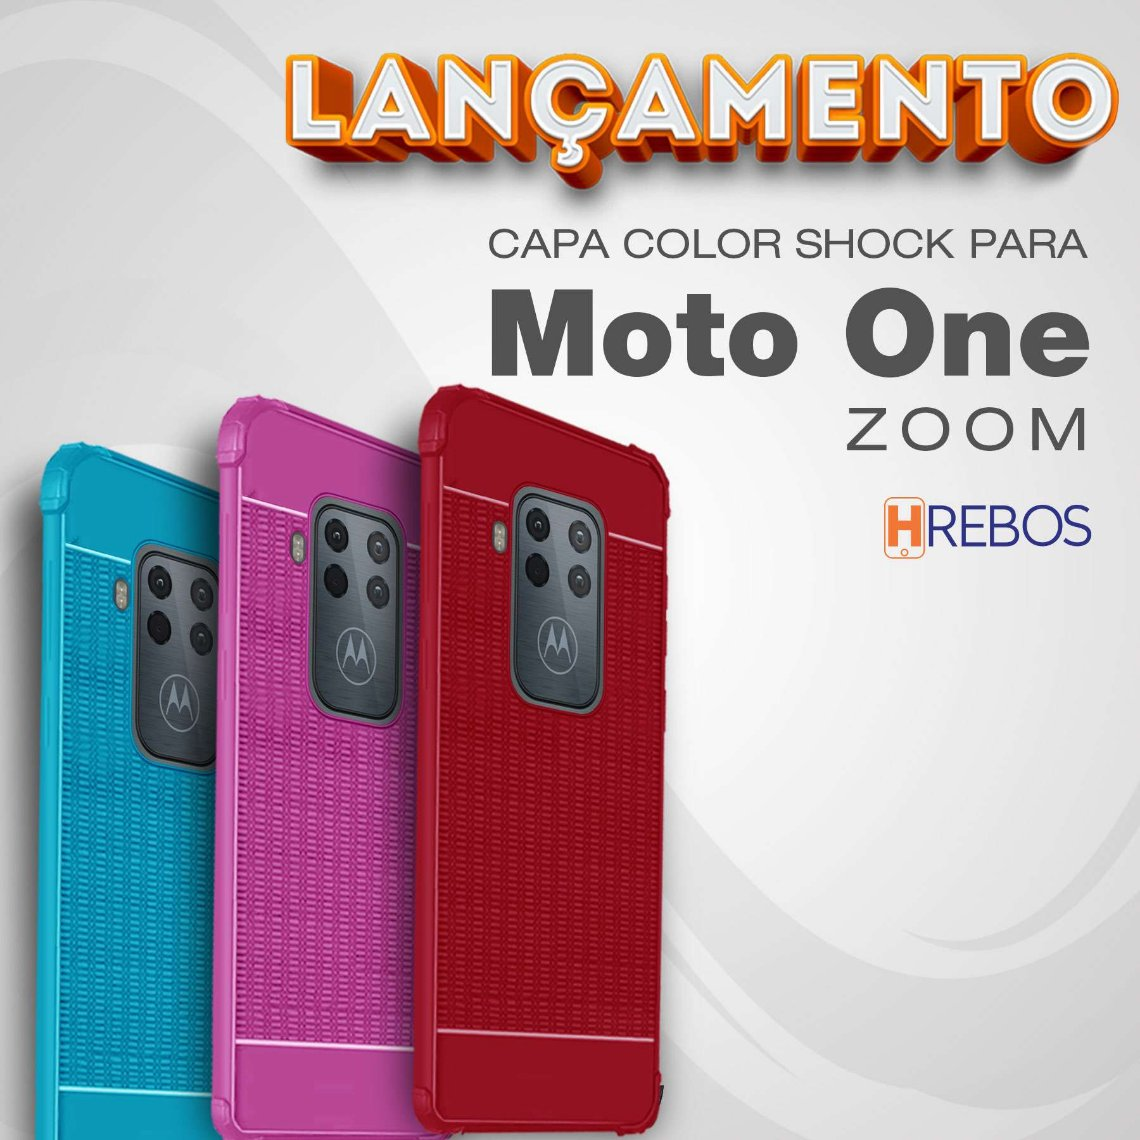 m-banner_motto_zoom_colorshock